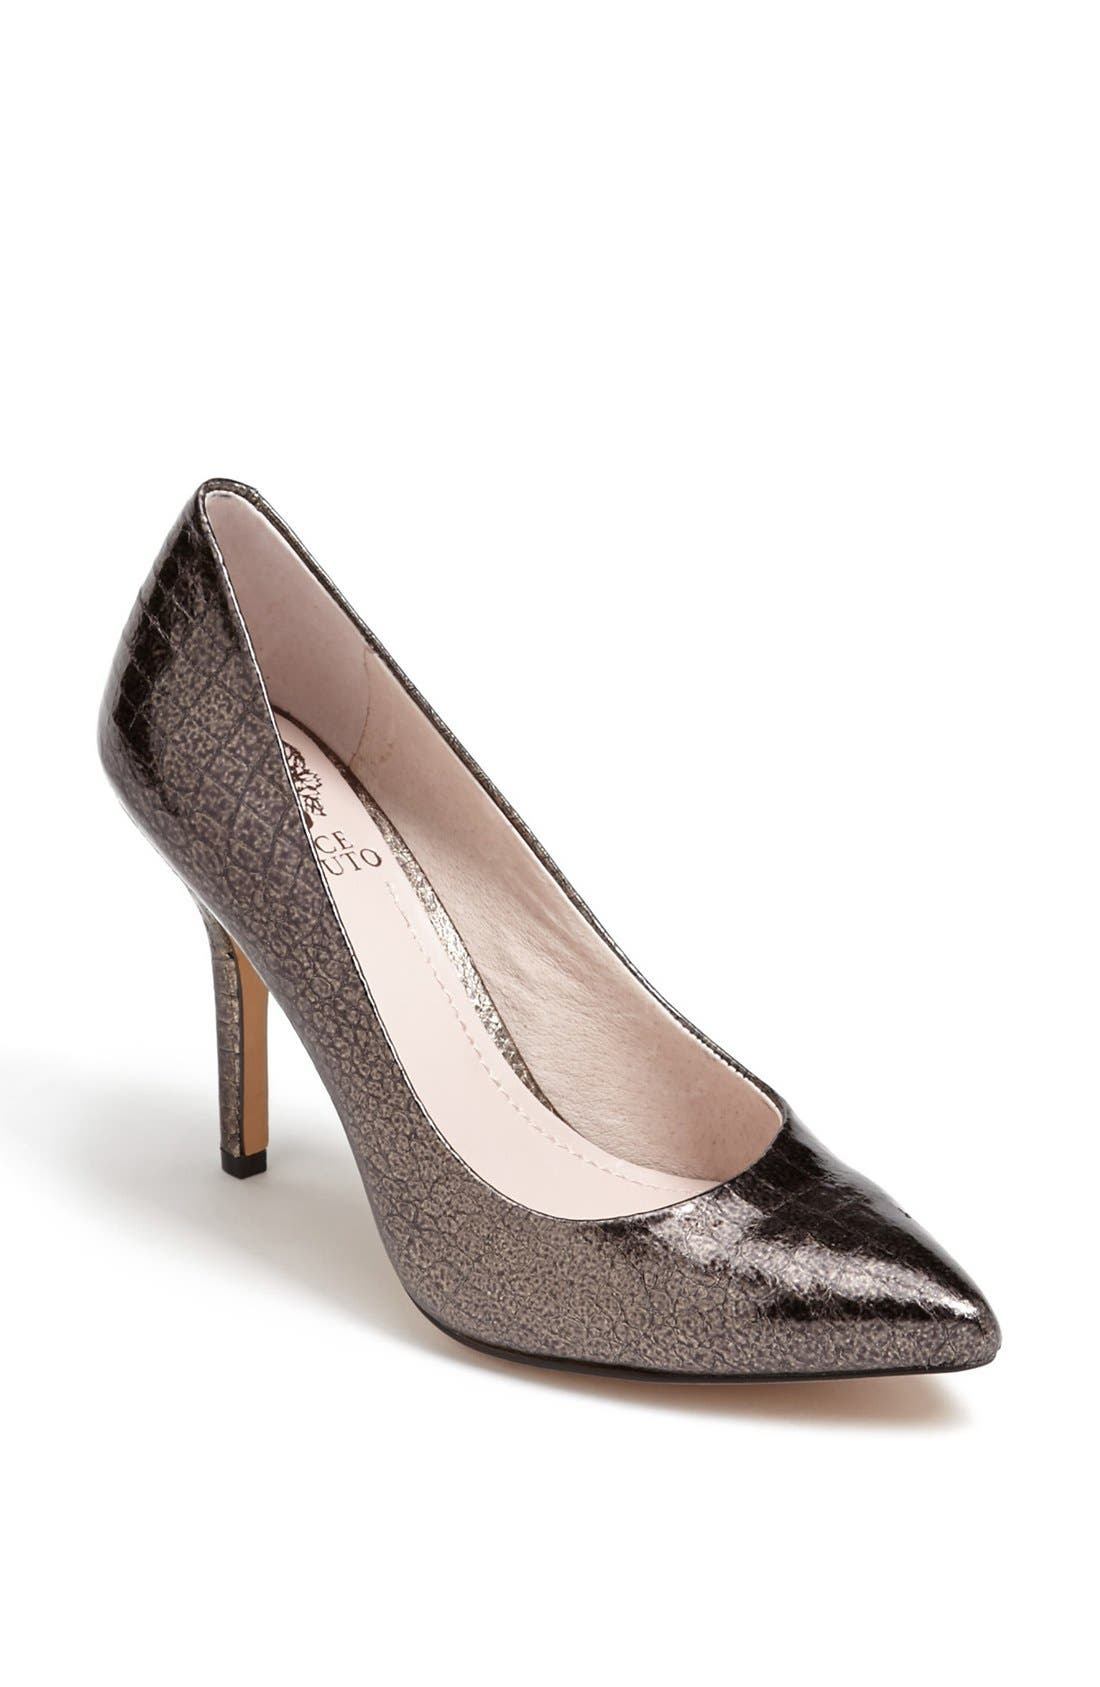 Alternate Image 1 Selected - Vince Camuto 'Hallee' Pump (Nordstrom Exclusive)